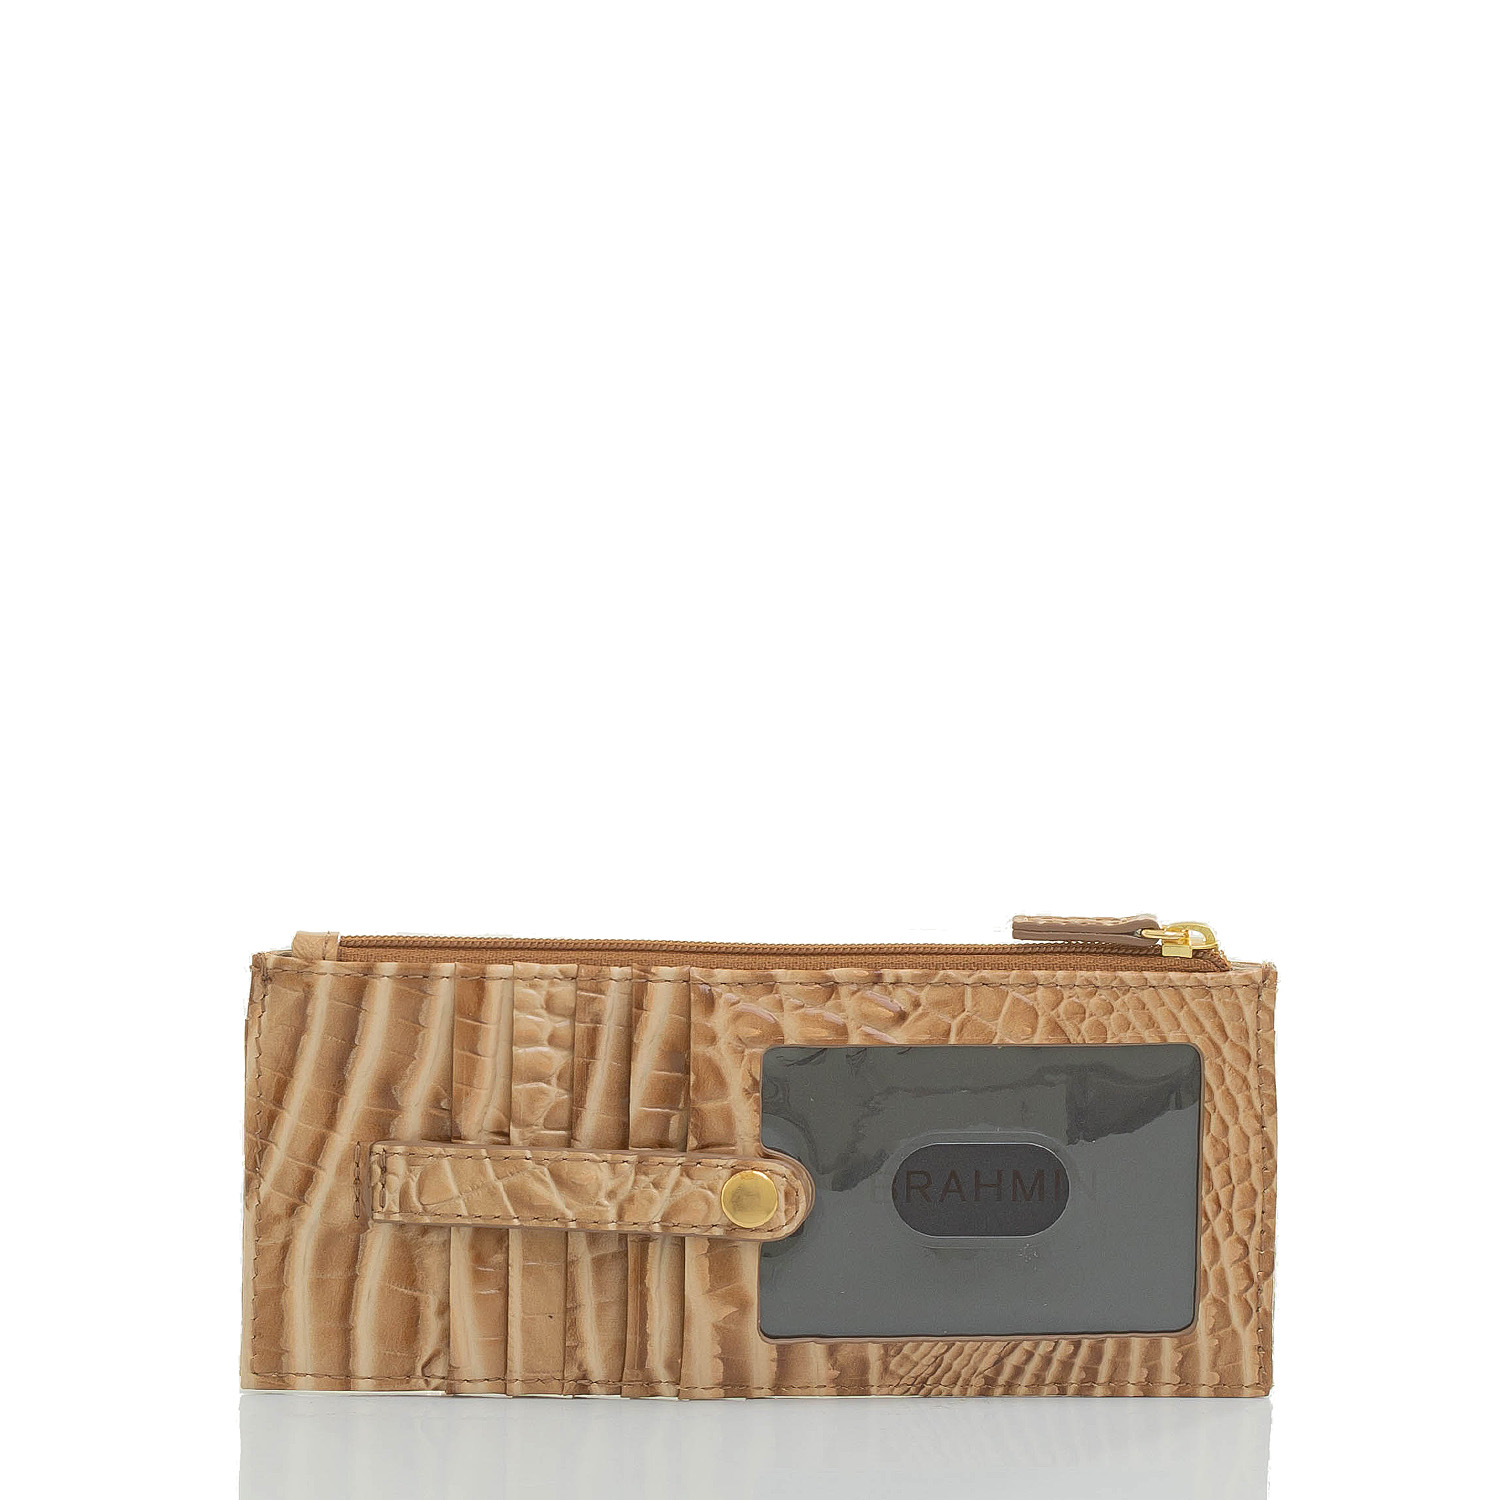 Credit Card Wallet Shortbread Melbourne